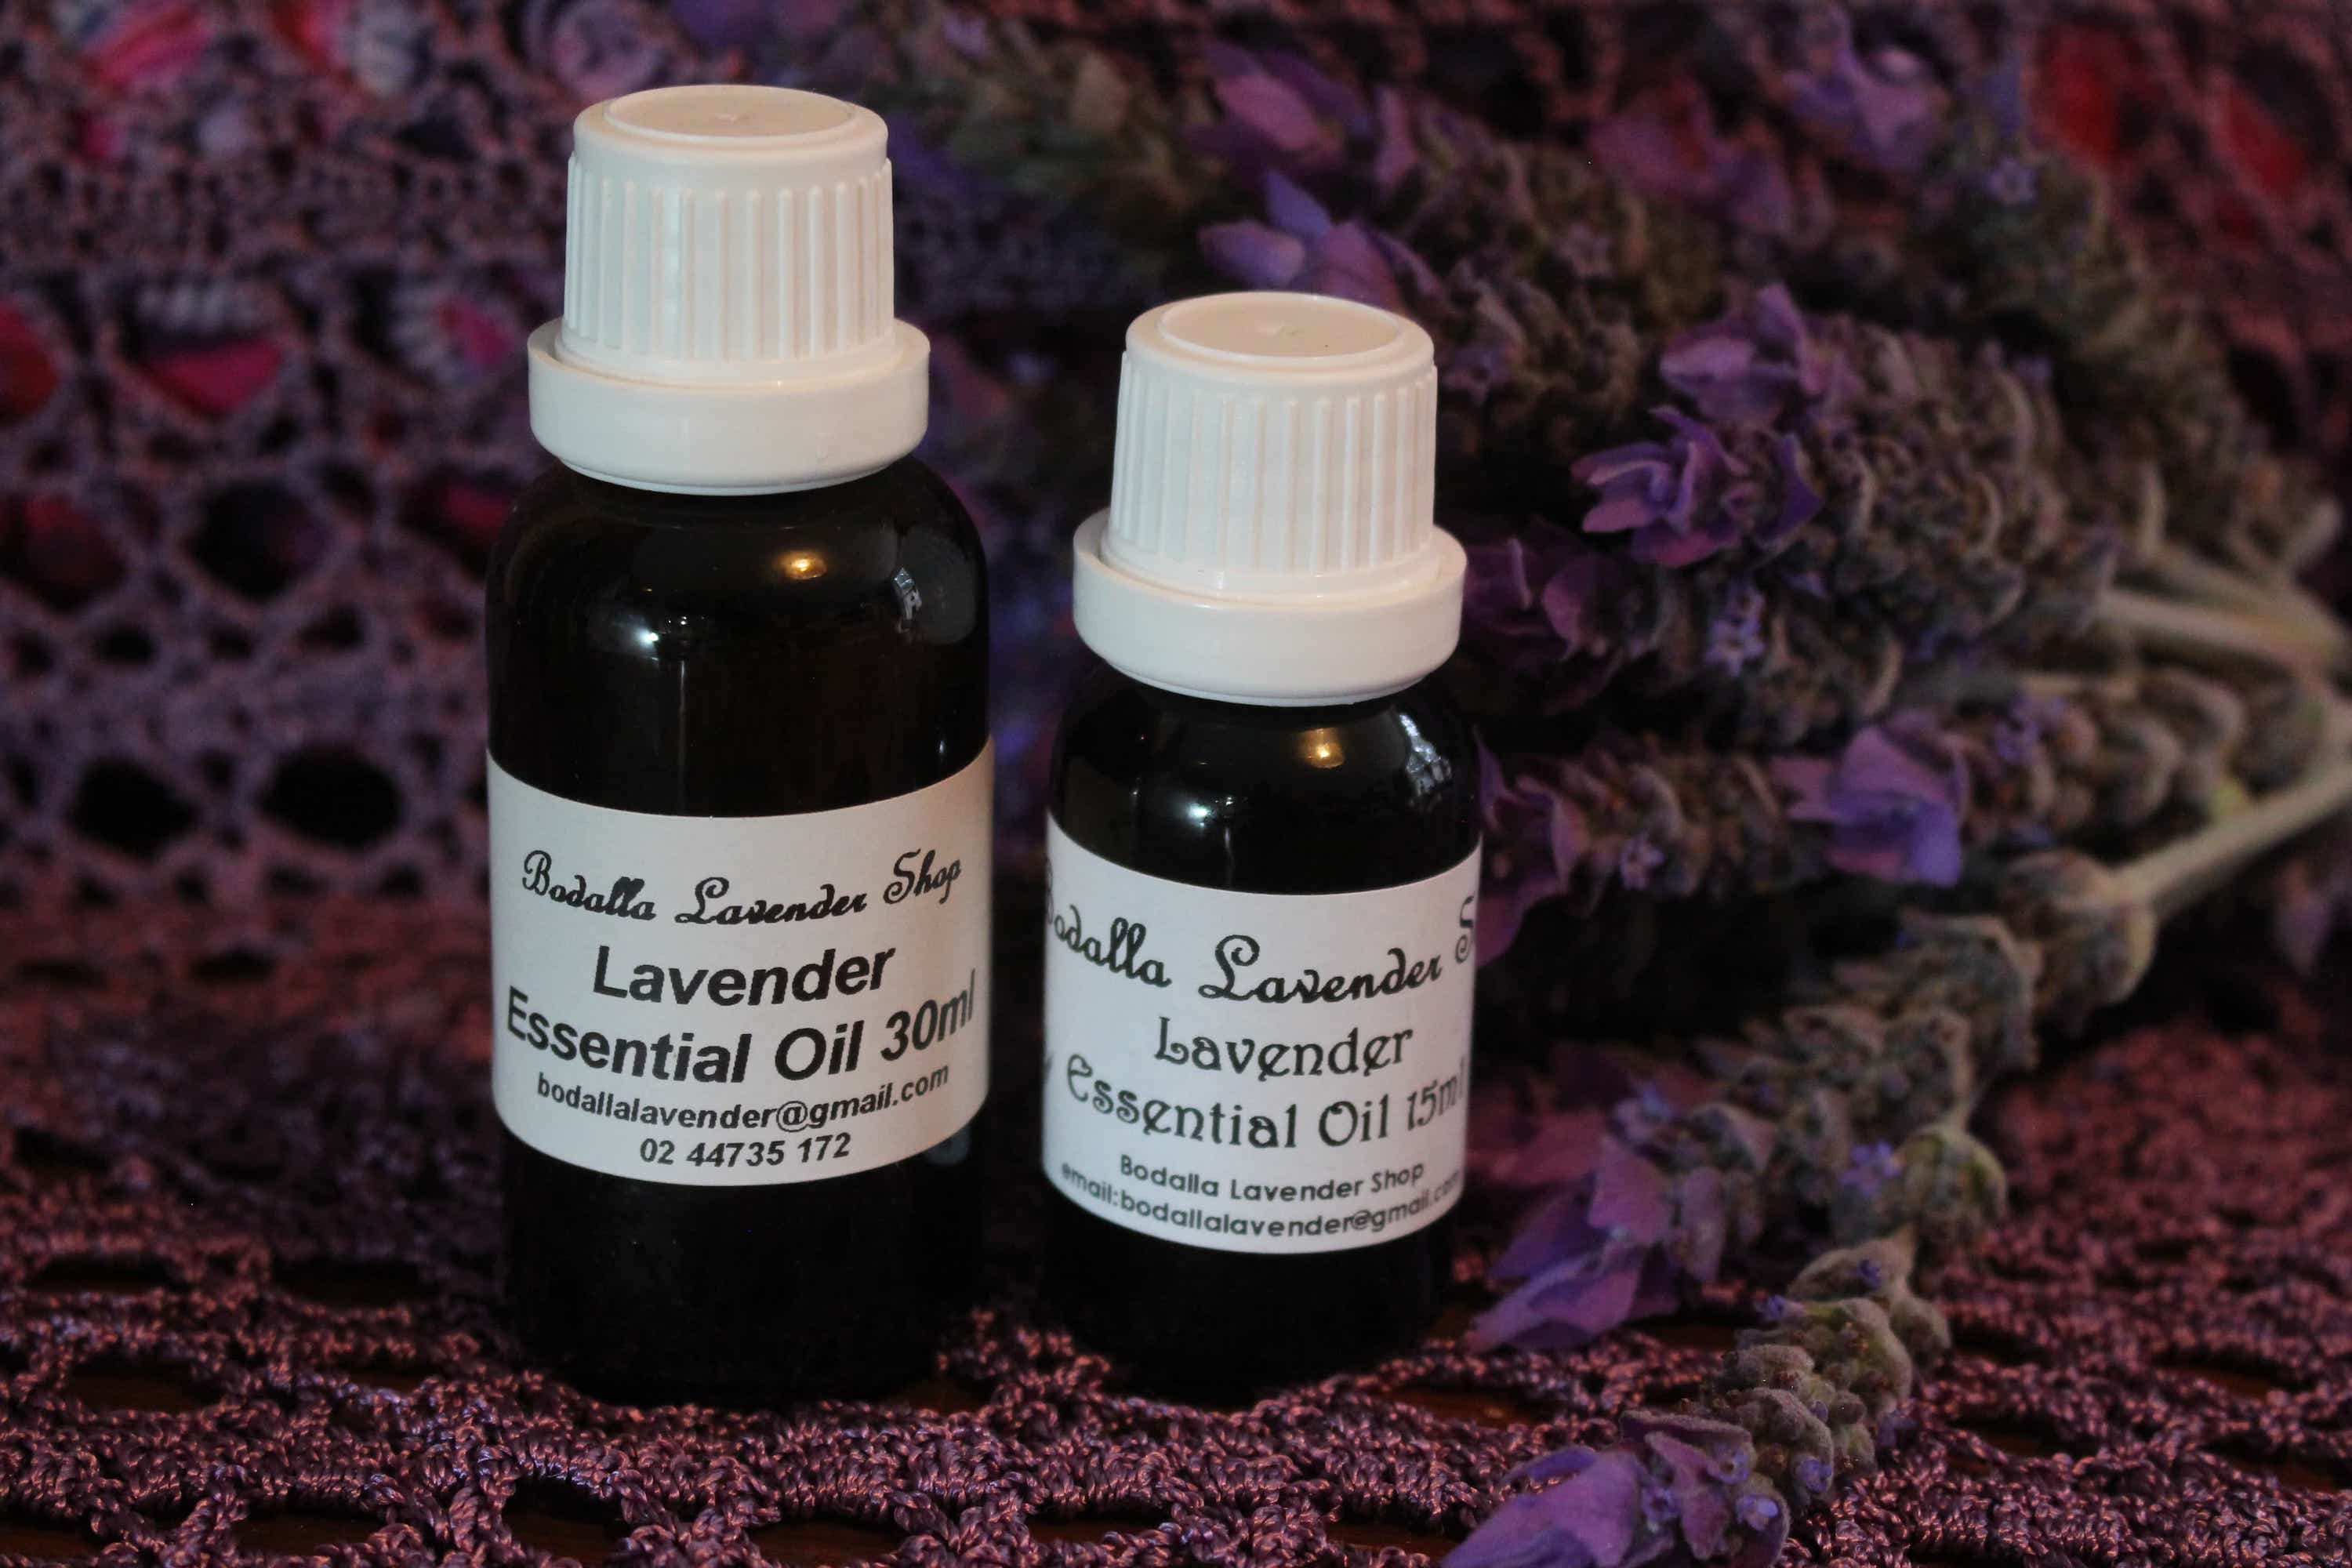 Photograph of an Lavender Essential Oil 30ml product